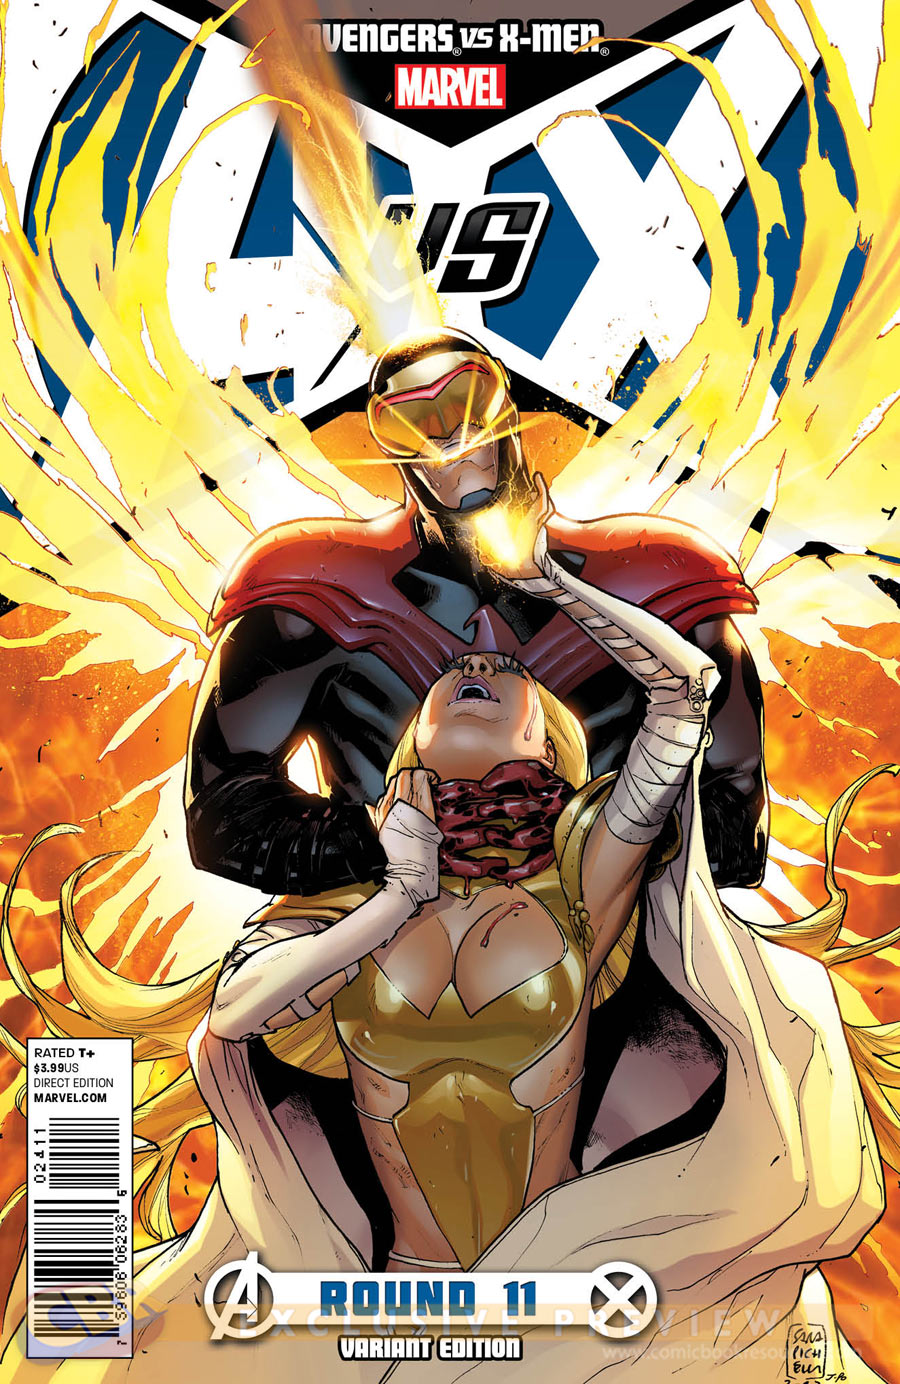 X Men Cyclops And Emma Frost Avengers vs X-M...